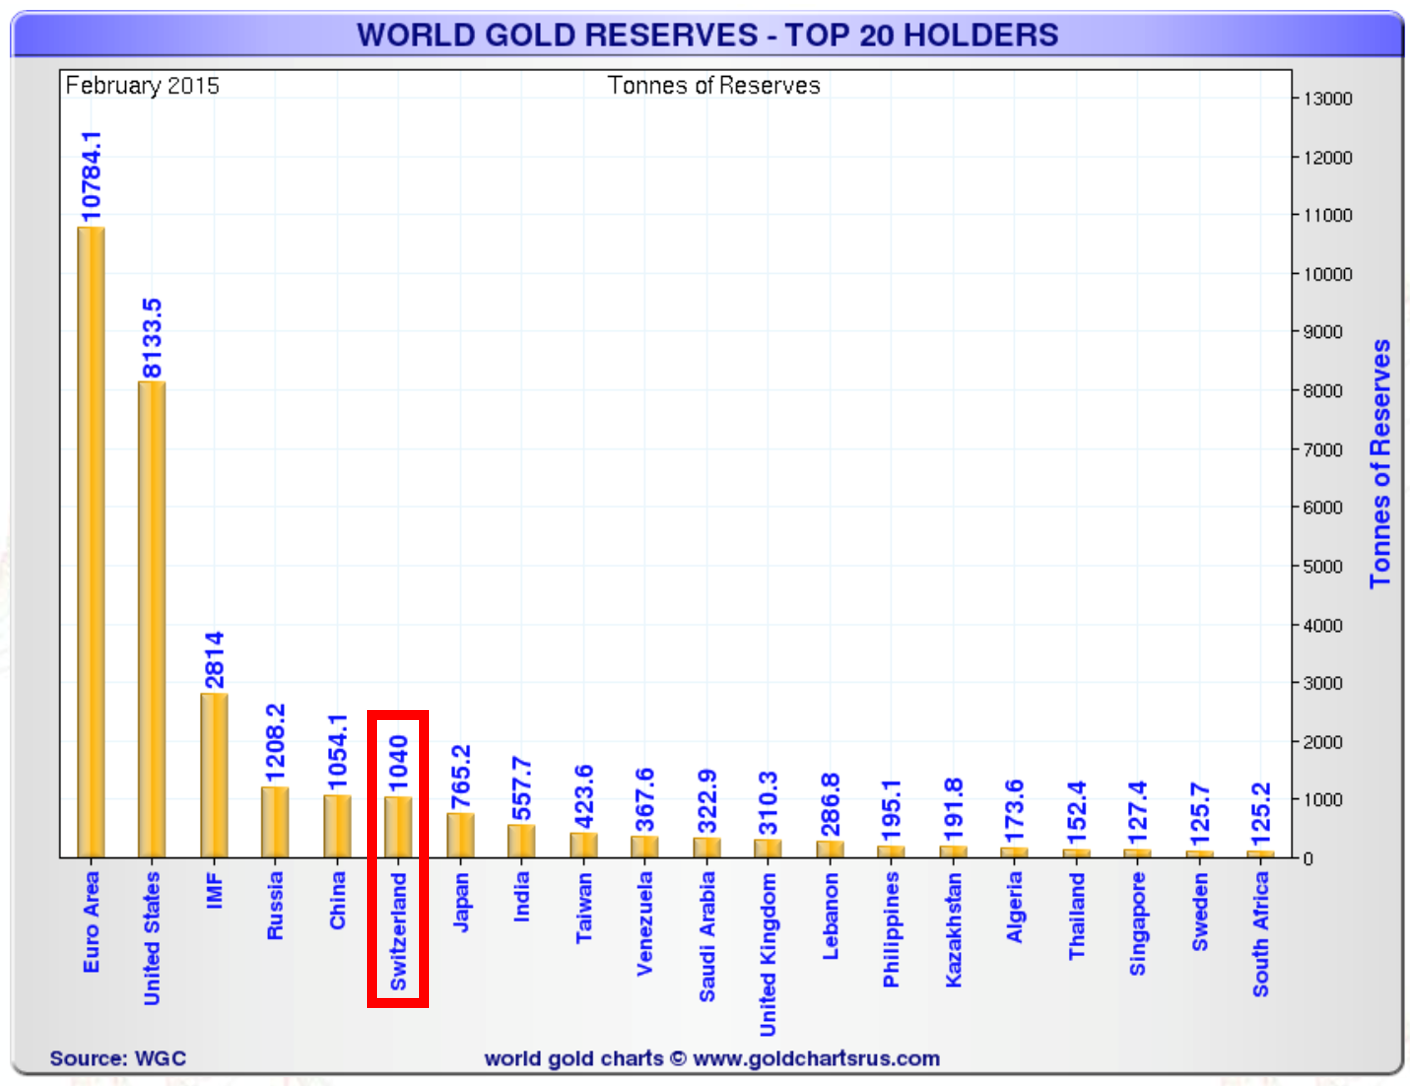 World Gold Reserves – Top 20 Holders (Tonnes)